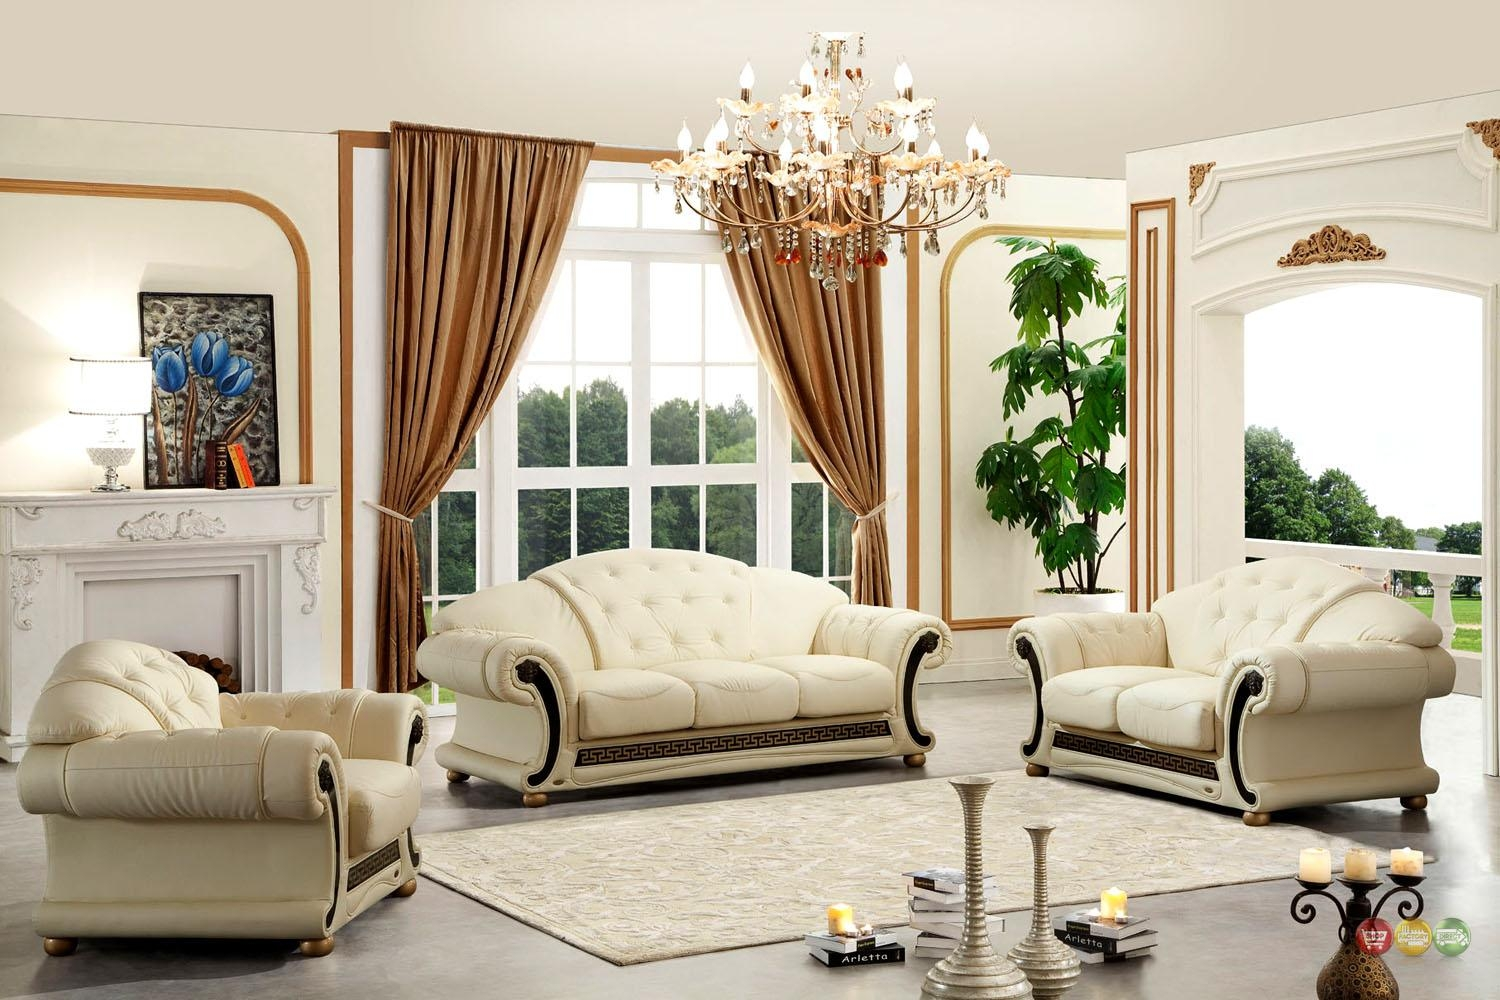 Sofas Center : Breathtaking Beige Sofa Set Picture Inspirations Inside Traditional Sofas For Sale (View 11 of 20)